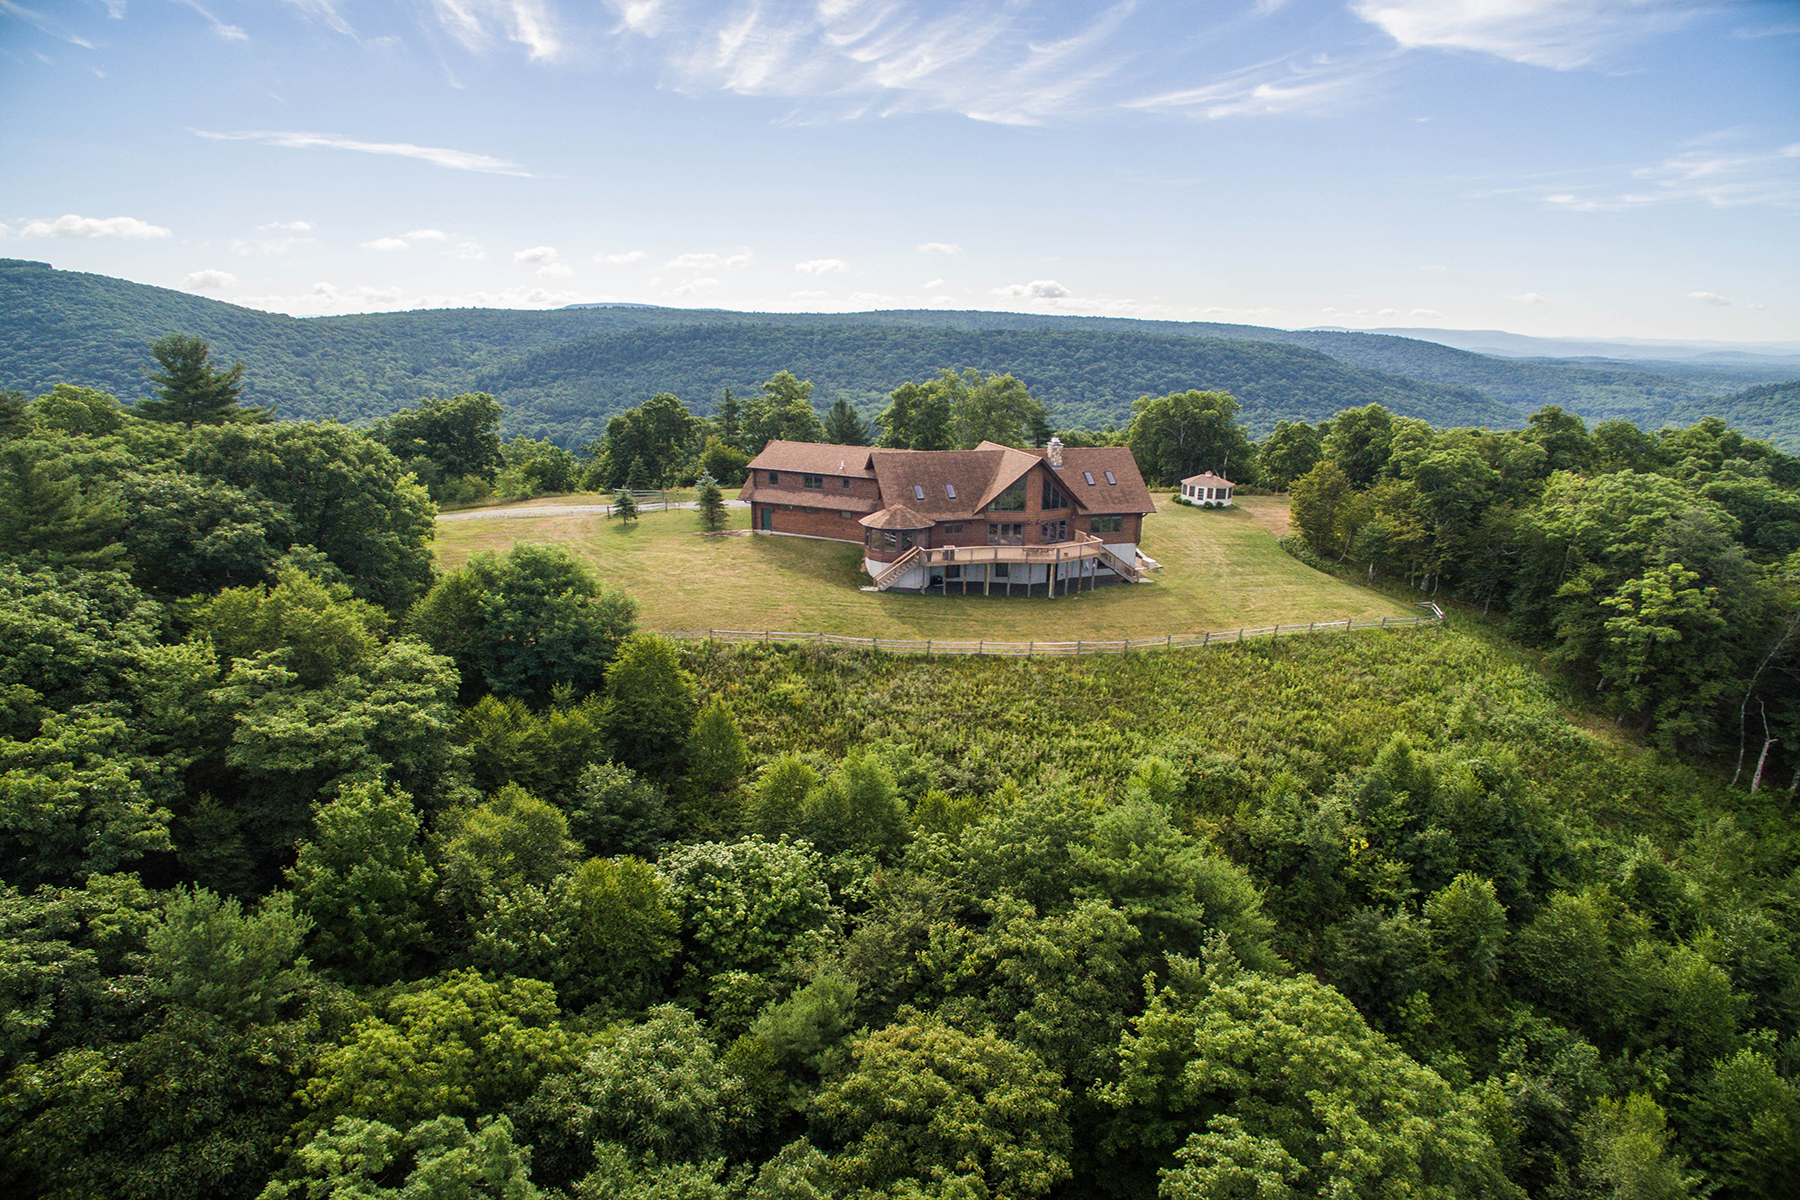 Single Family Home for Sale at Mountain Top Log Home on 127 Acres 270 Harrington Drive Austerlitz, 12017 United States